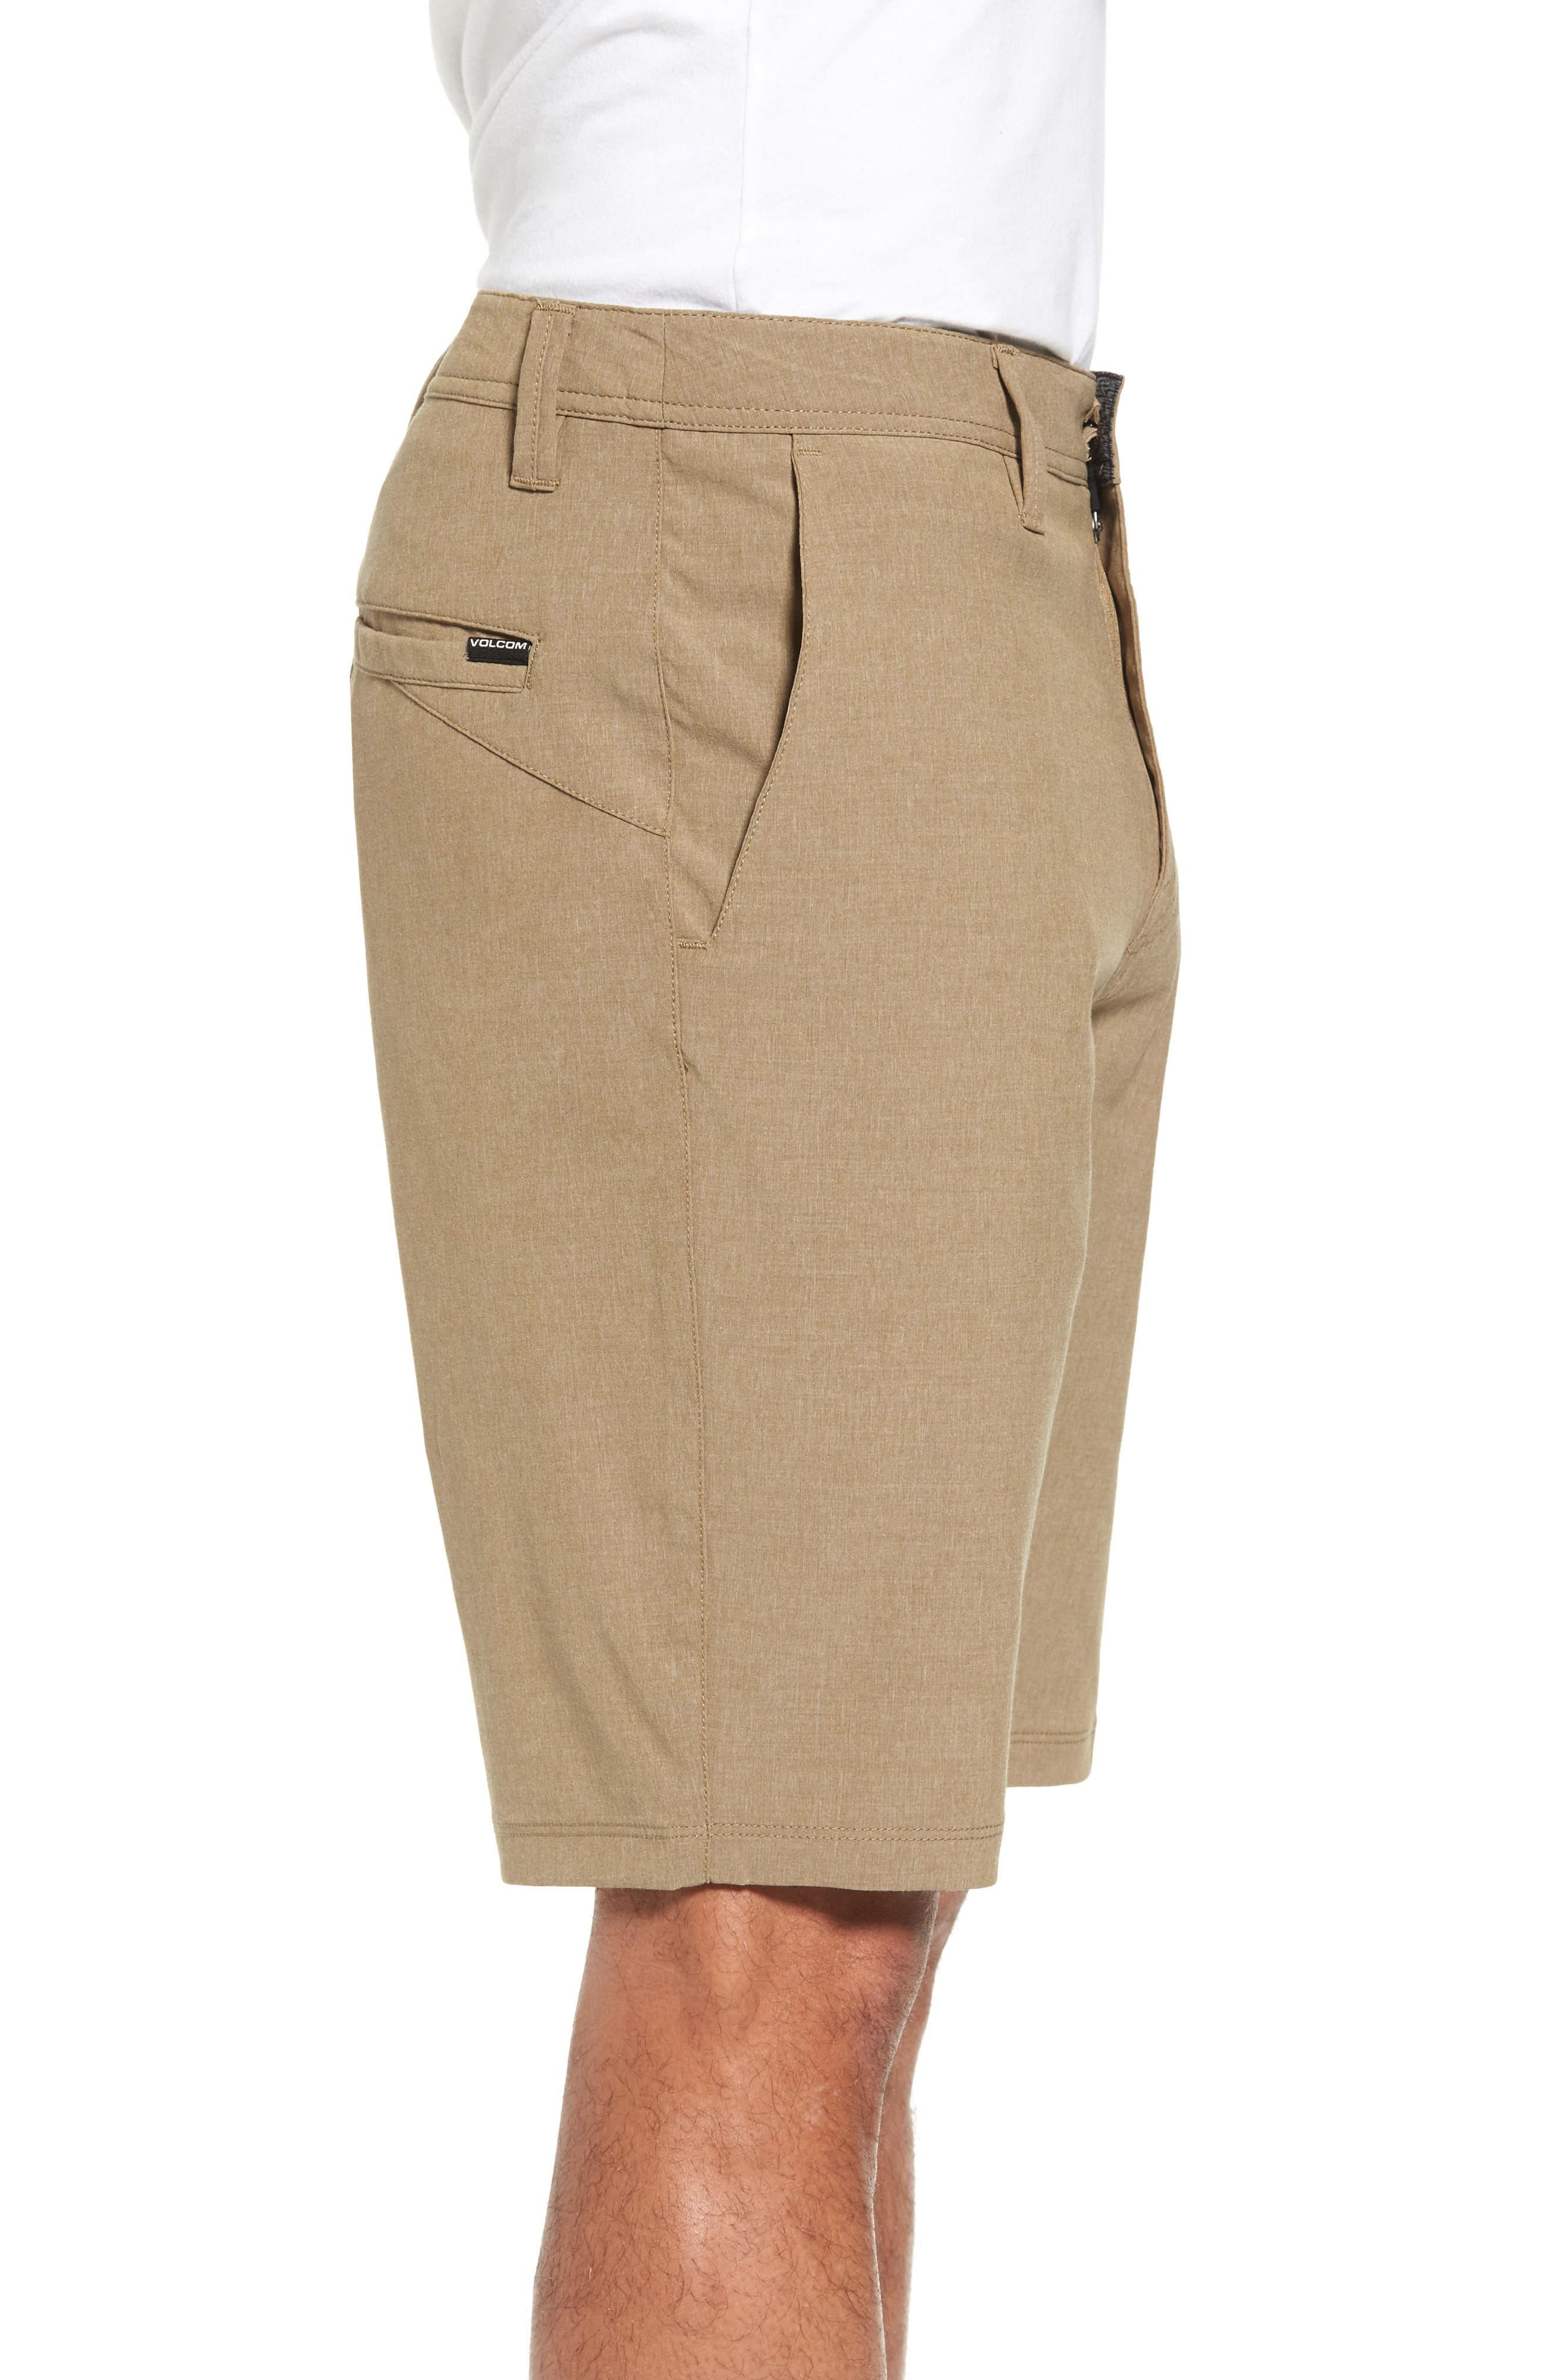 Hybrid Shorts,                             Alternate thumbnail 3, color,                             Beige